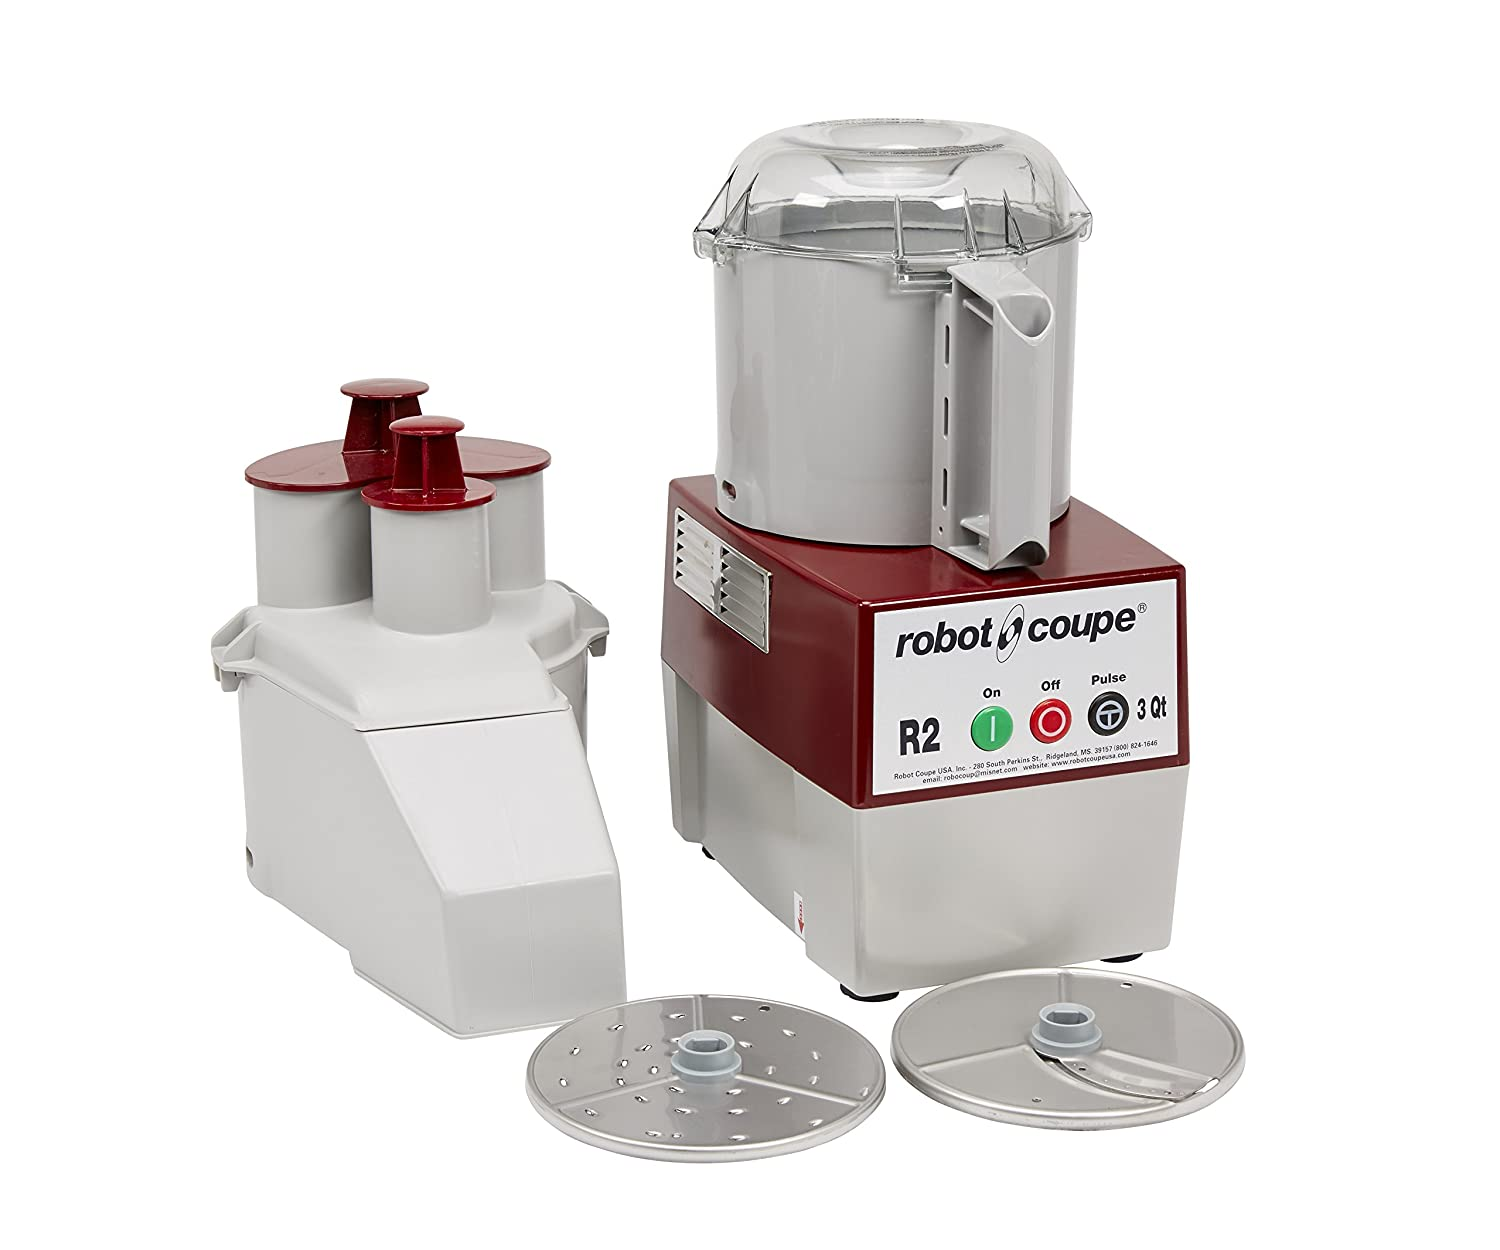 Robot Coupe - 4581 R2N Continuous Feed Combination Food Processor with 3-Quart Polycarbonate Bowl, 1-HP, 120-Volts